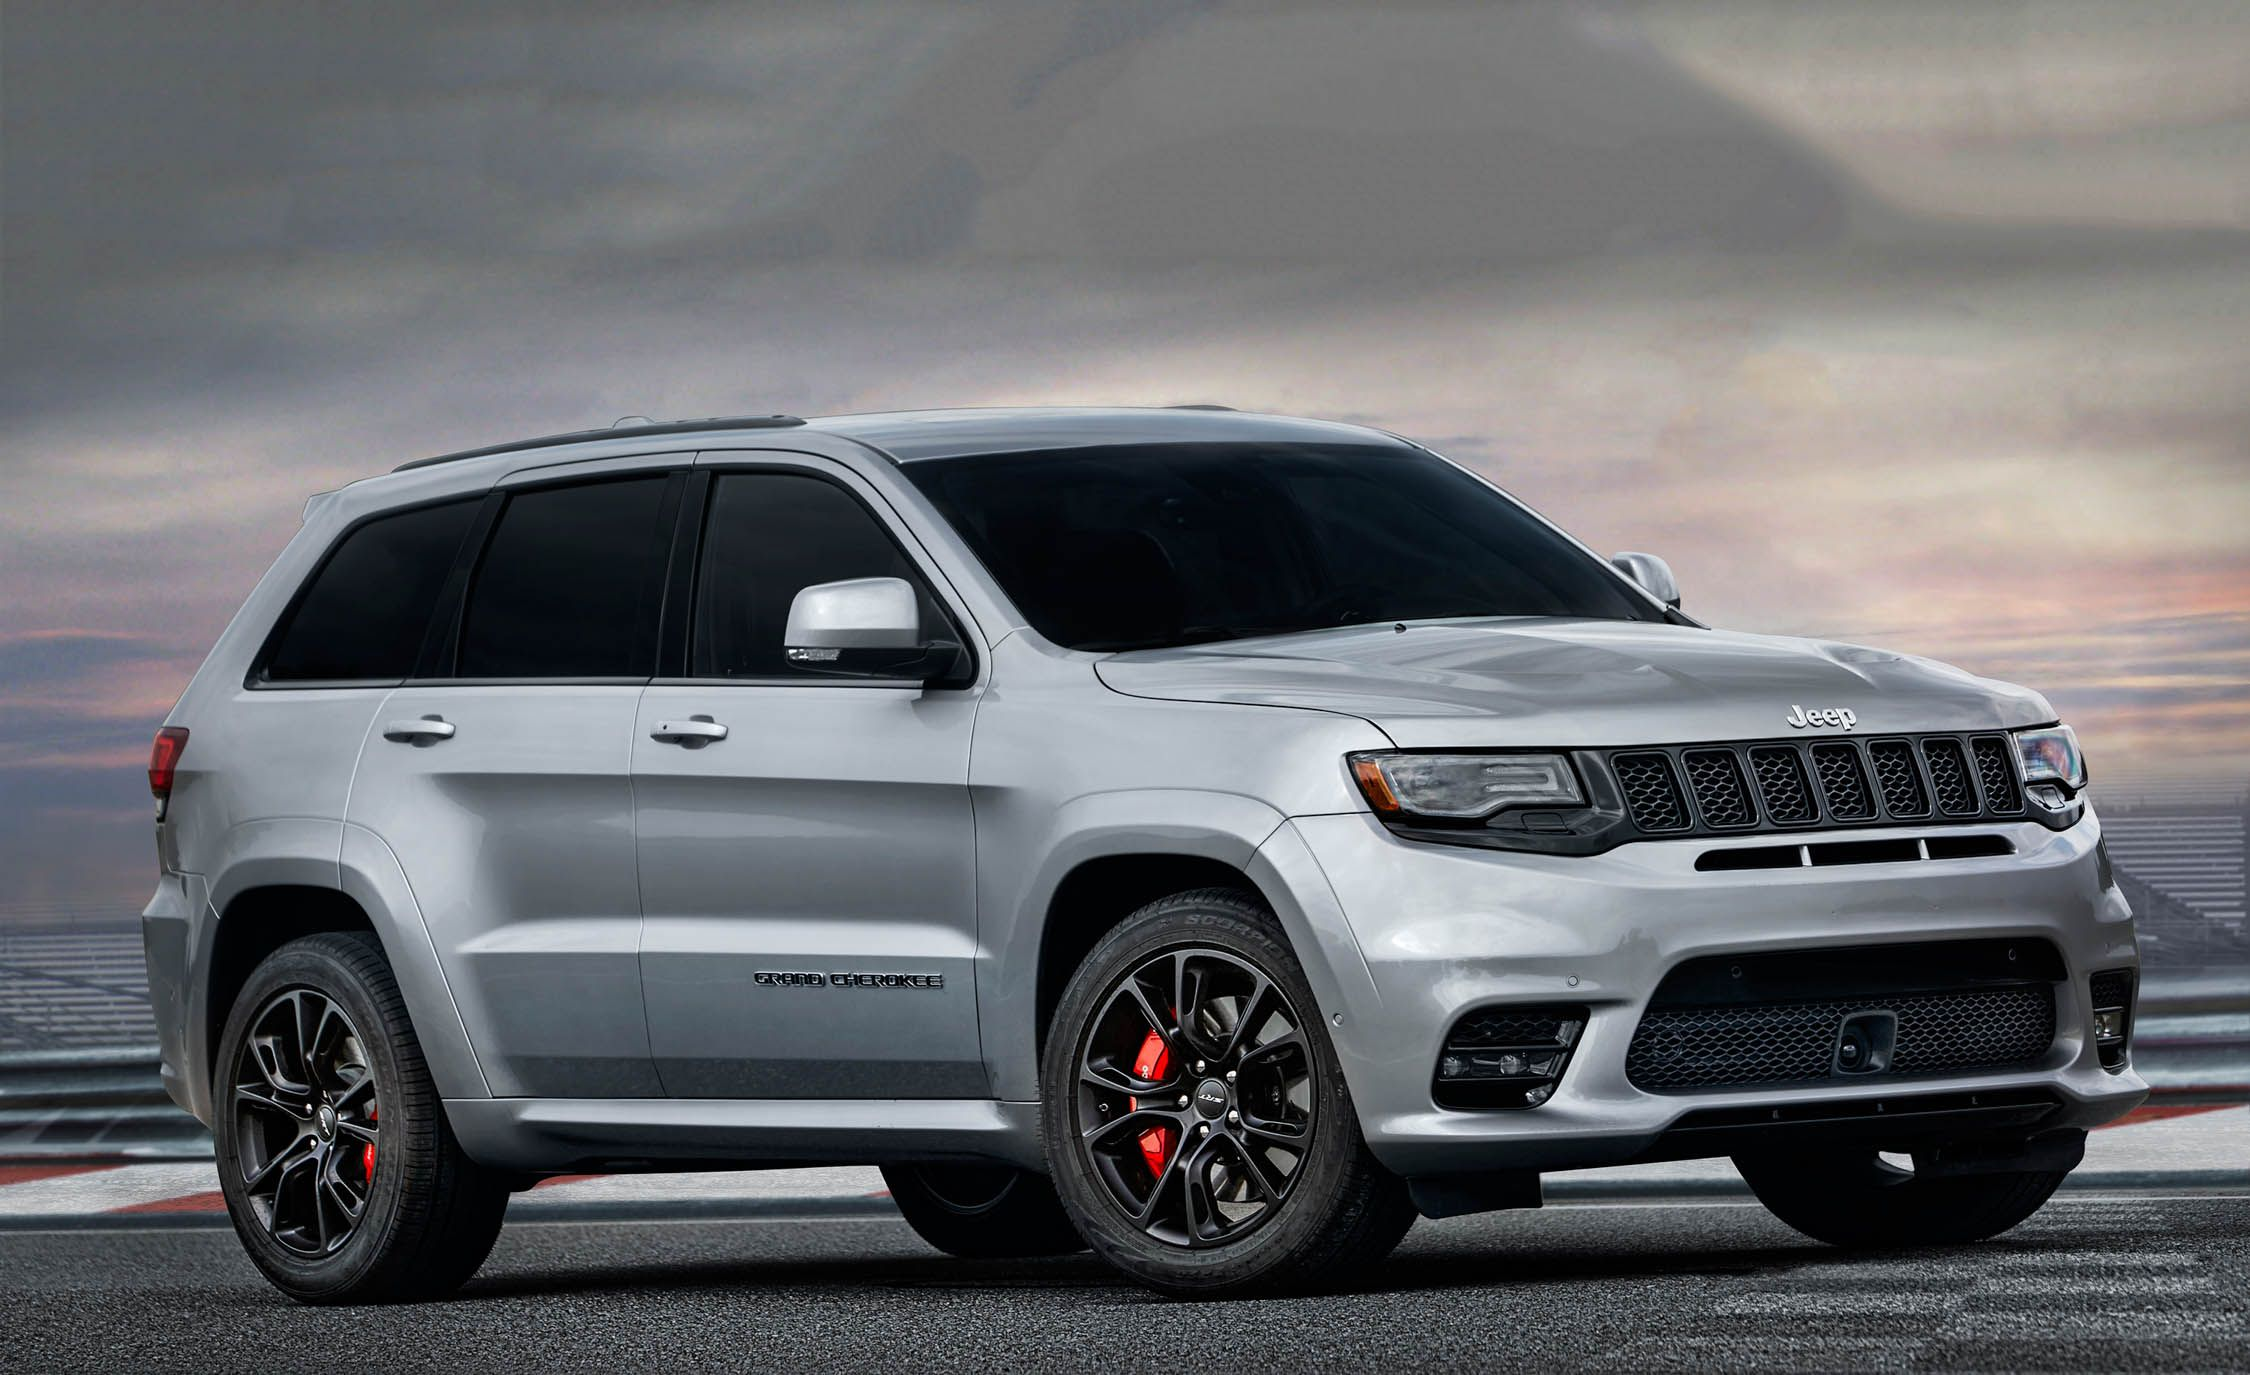 2017 jeep grand cherokee srt photo gallery car and driver. Black Bedroom Furniture Sets. Home Design Ideas